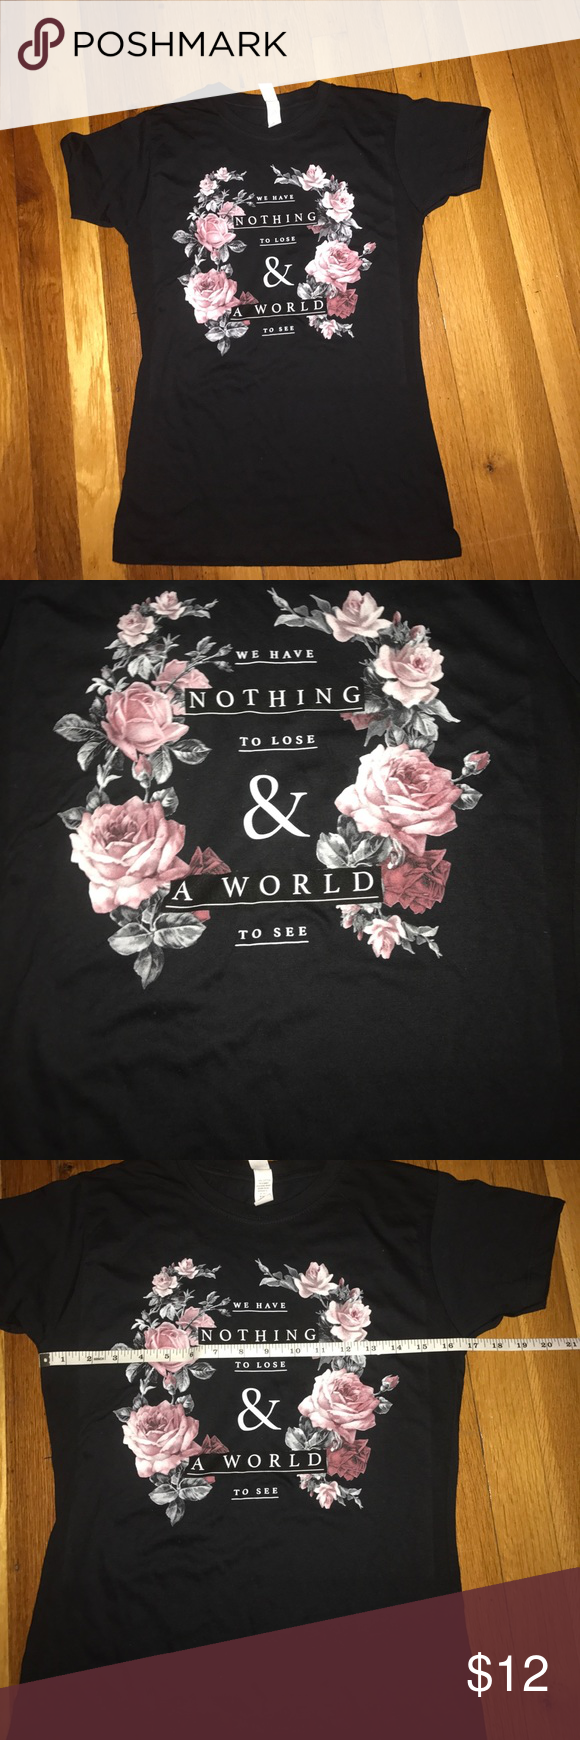 Black t shirt large - Black T Shirt Large W Quote Flowers